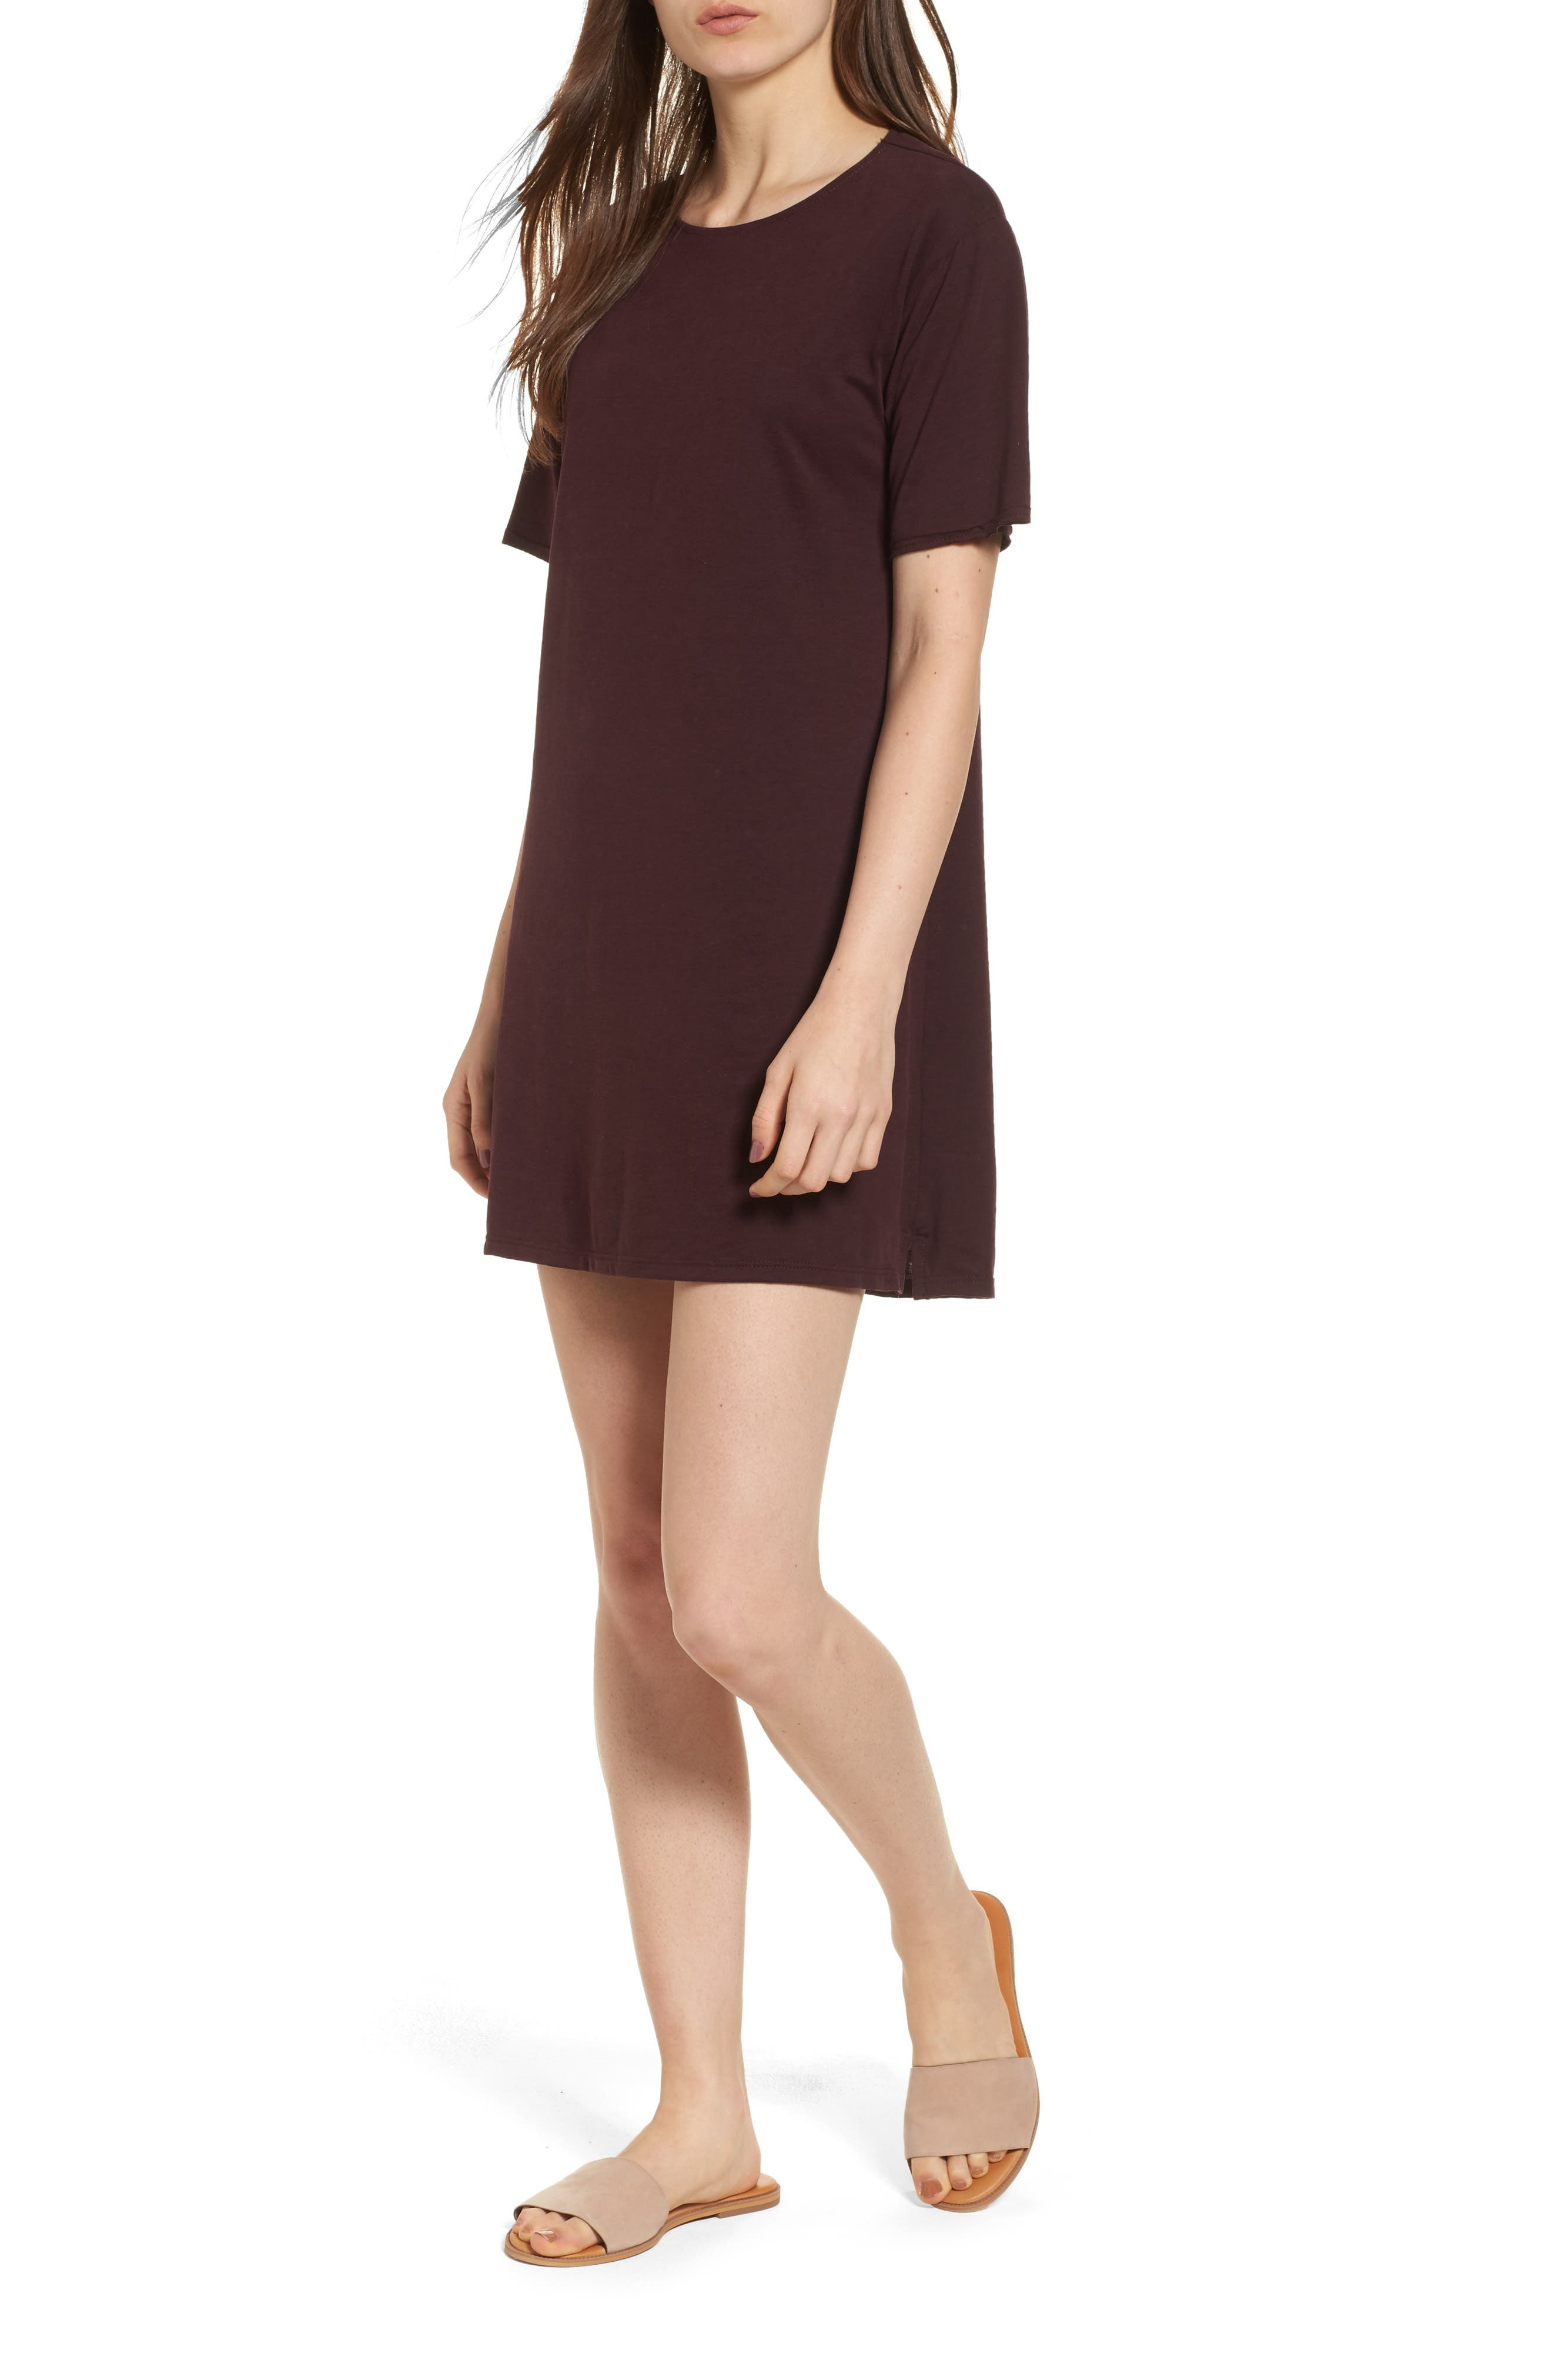 Main Image - PST by Project Social T Tie Back T-Shirt Dress